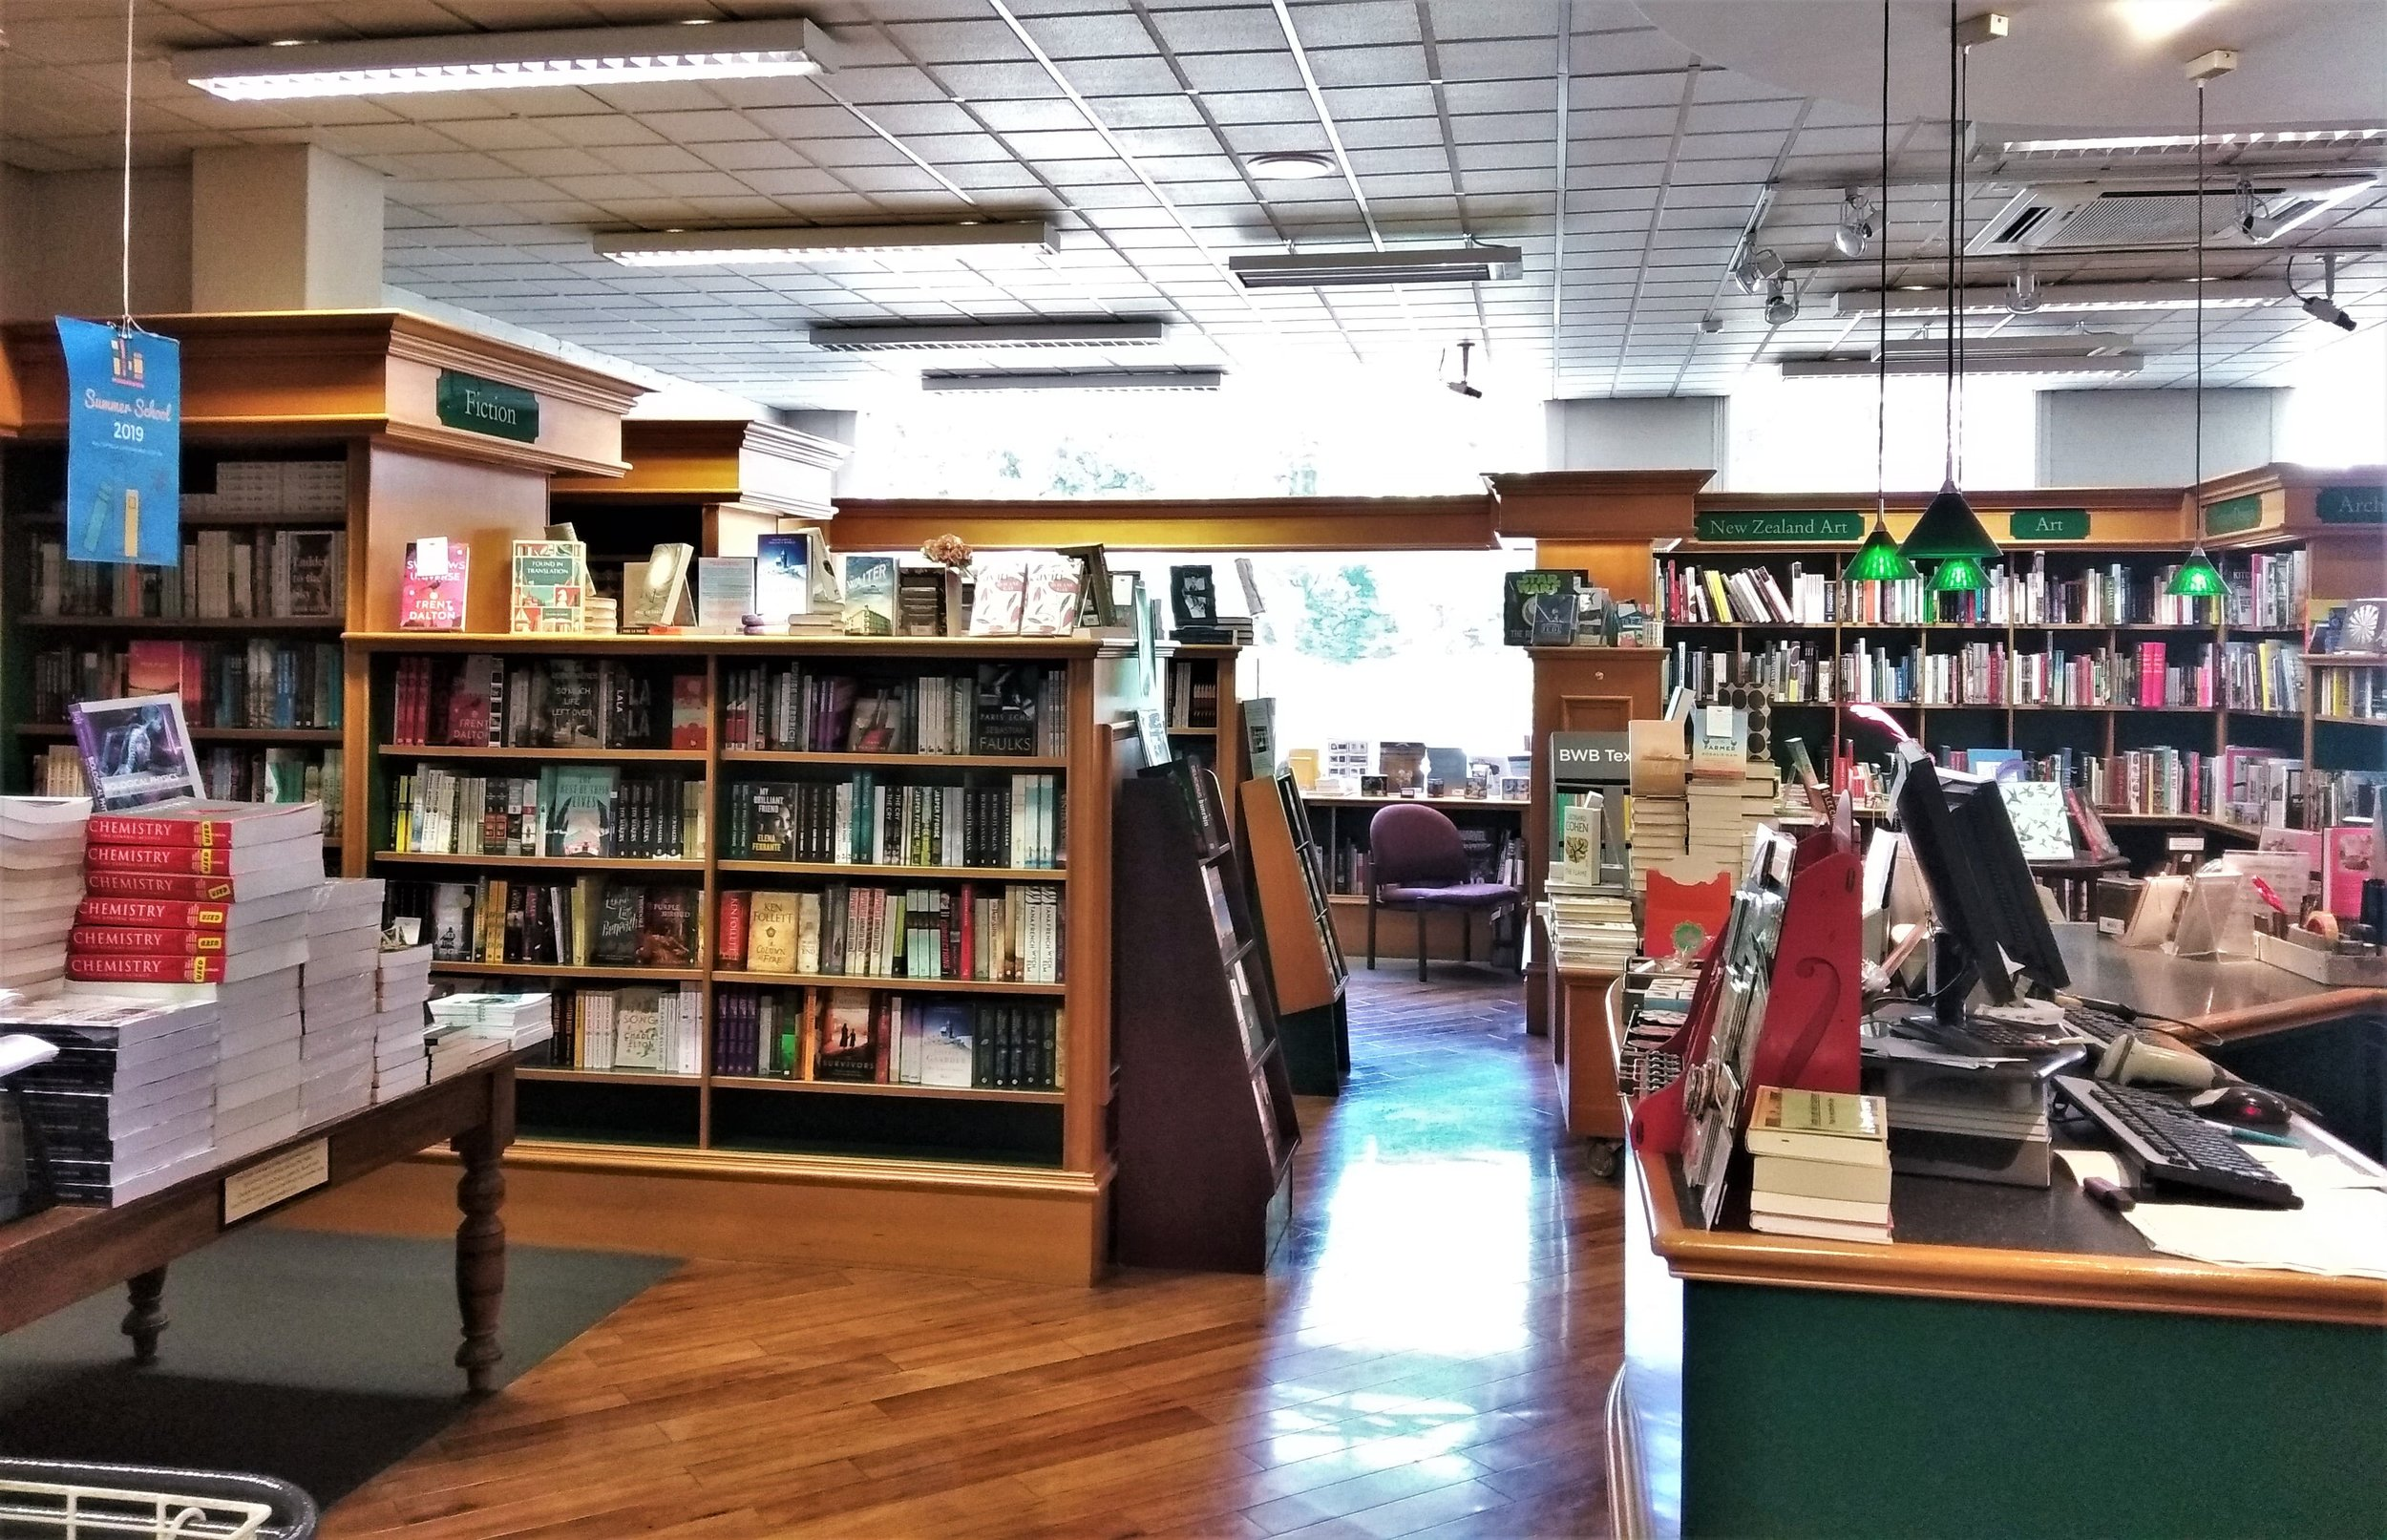 The University Book Shop is an institution in Duneden. A Book Lover's Guide to the South Island, New Zealand